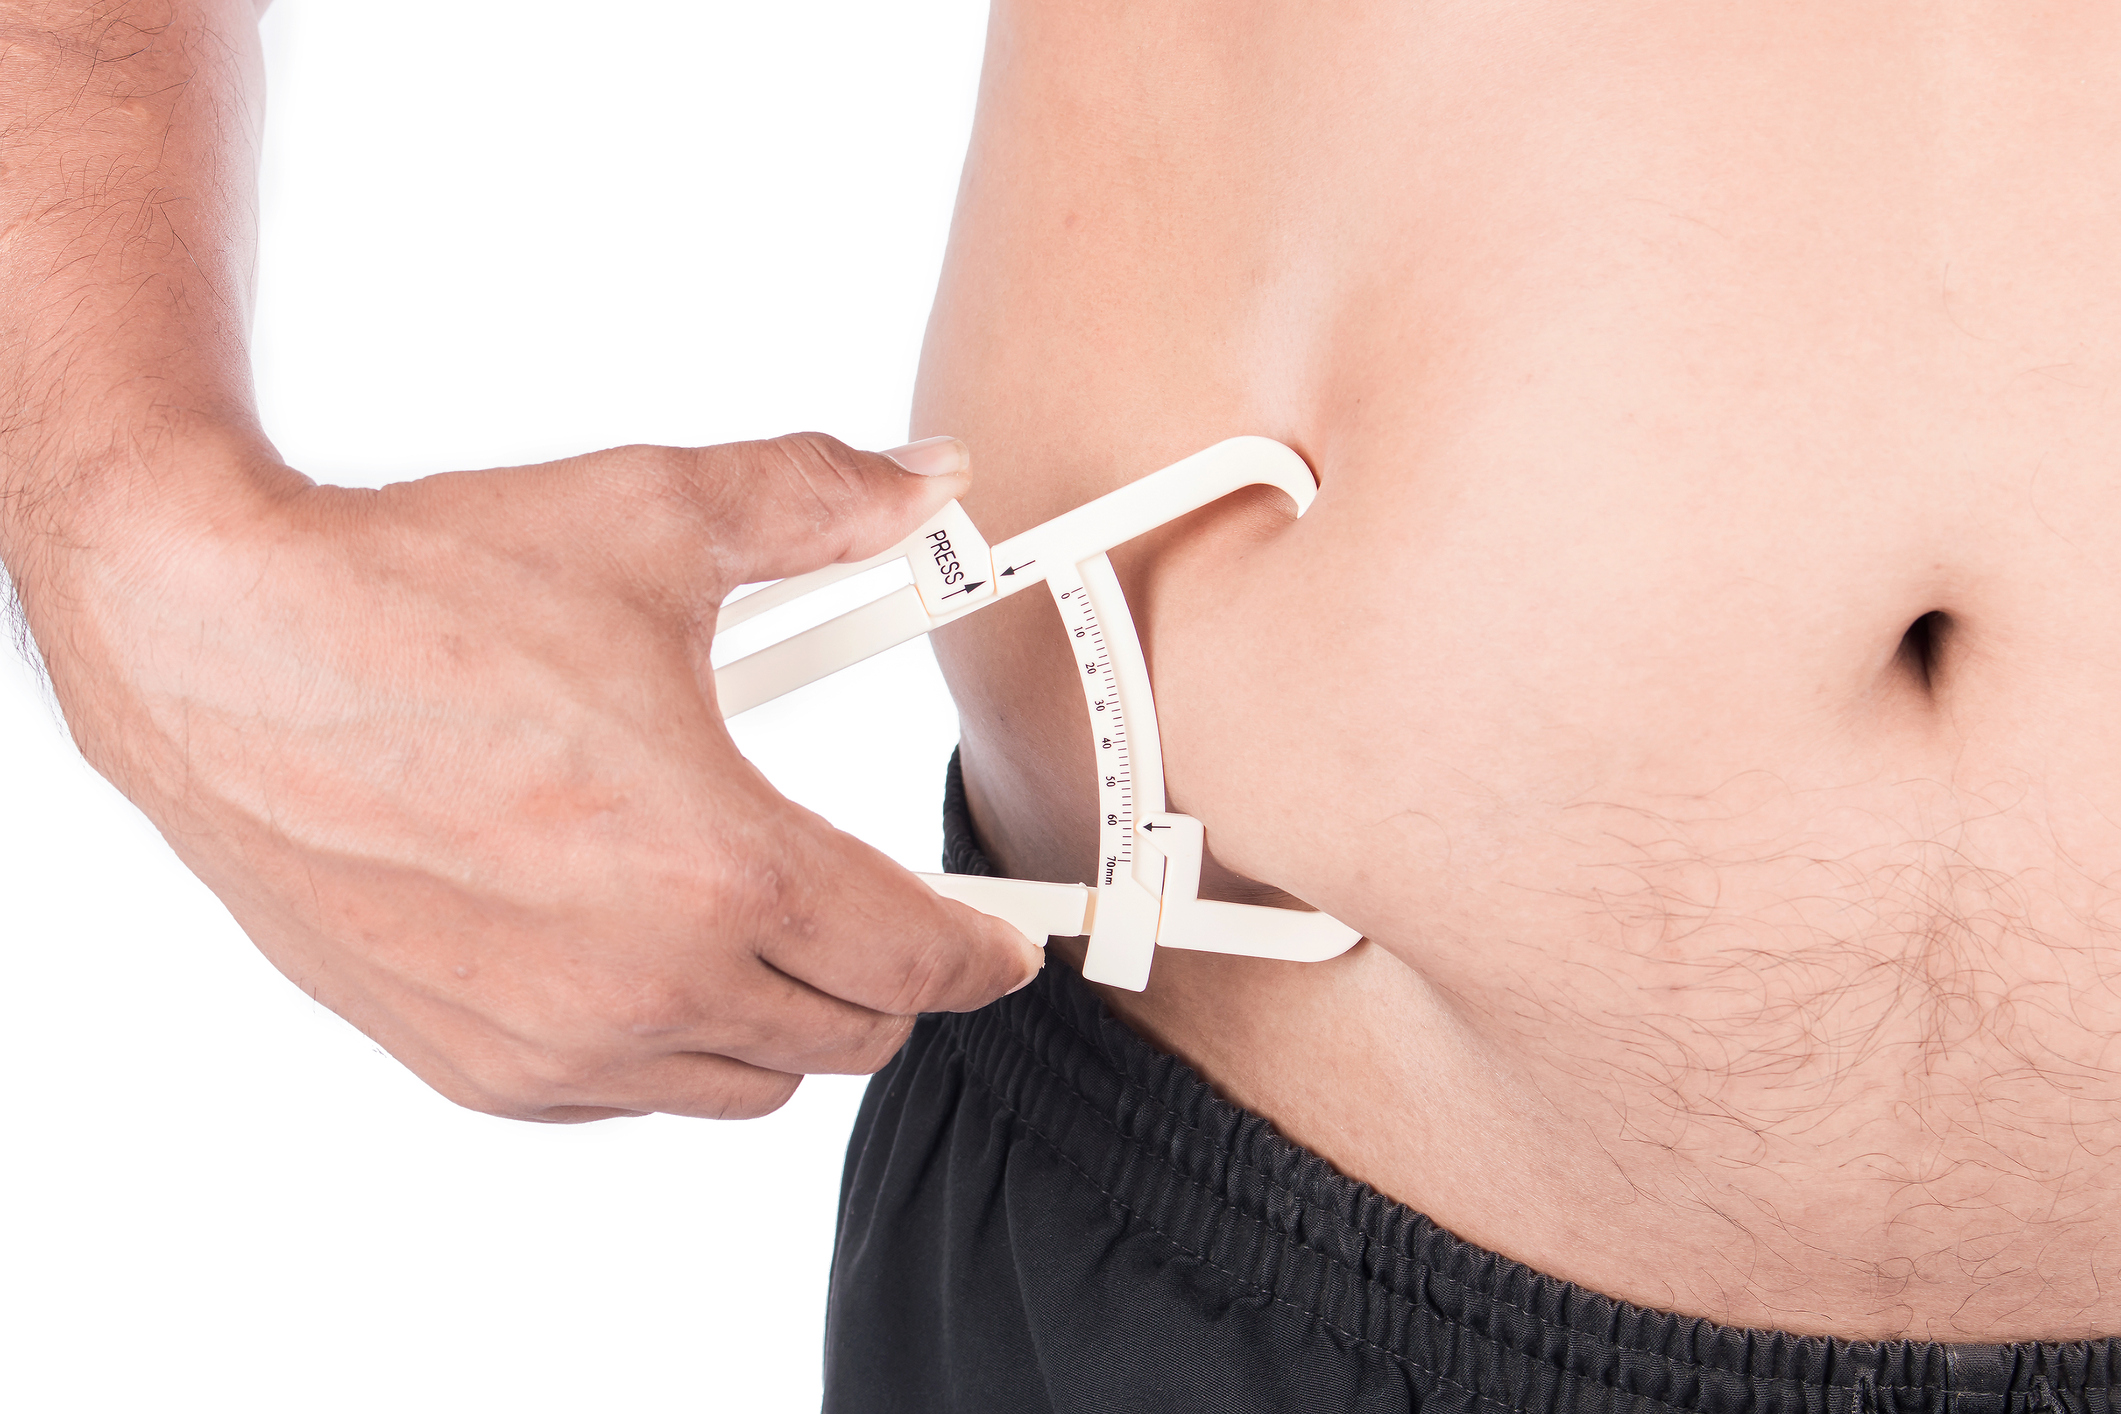 Bariatric patient gets belly measured